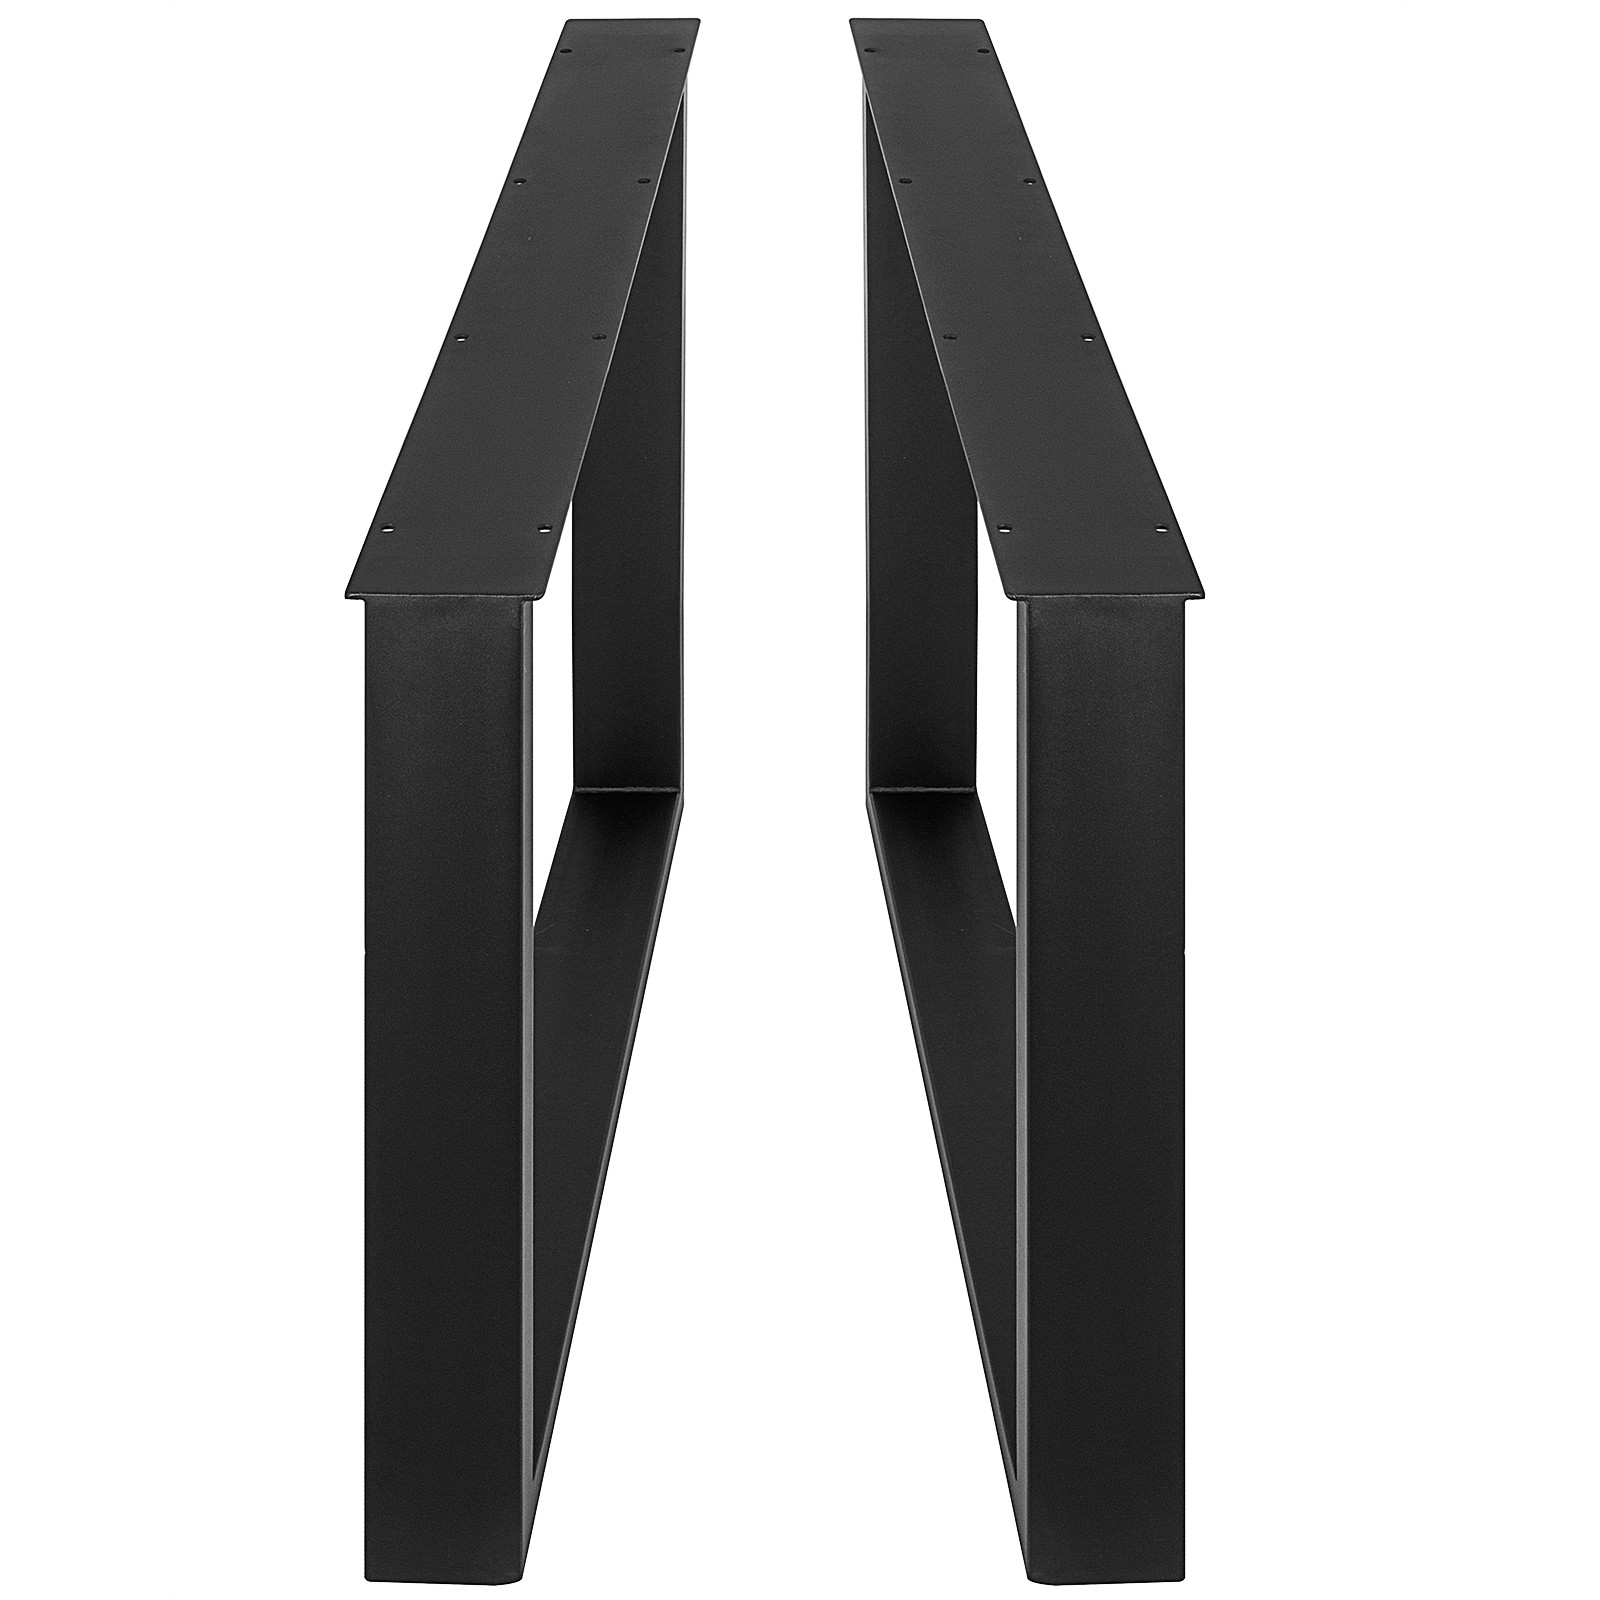 2X-Table-Legs-Black-Dining-Table-Leg-Heavy-Duty-Computer-Desk-Legs-Rectangle thumbnail 77